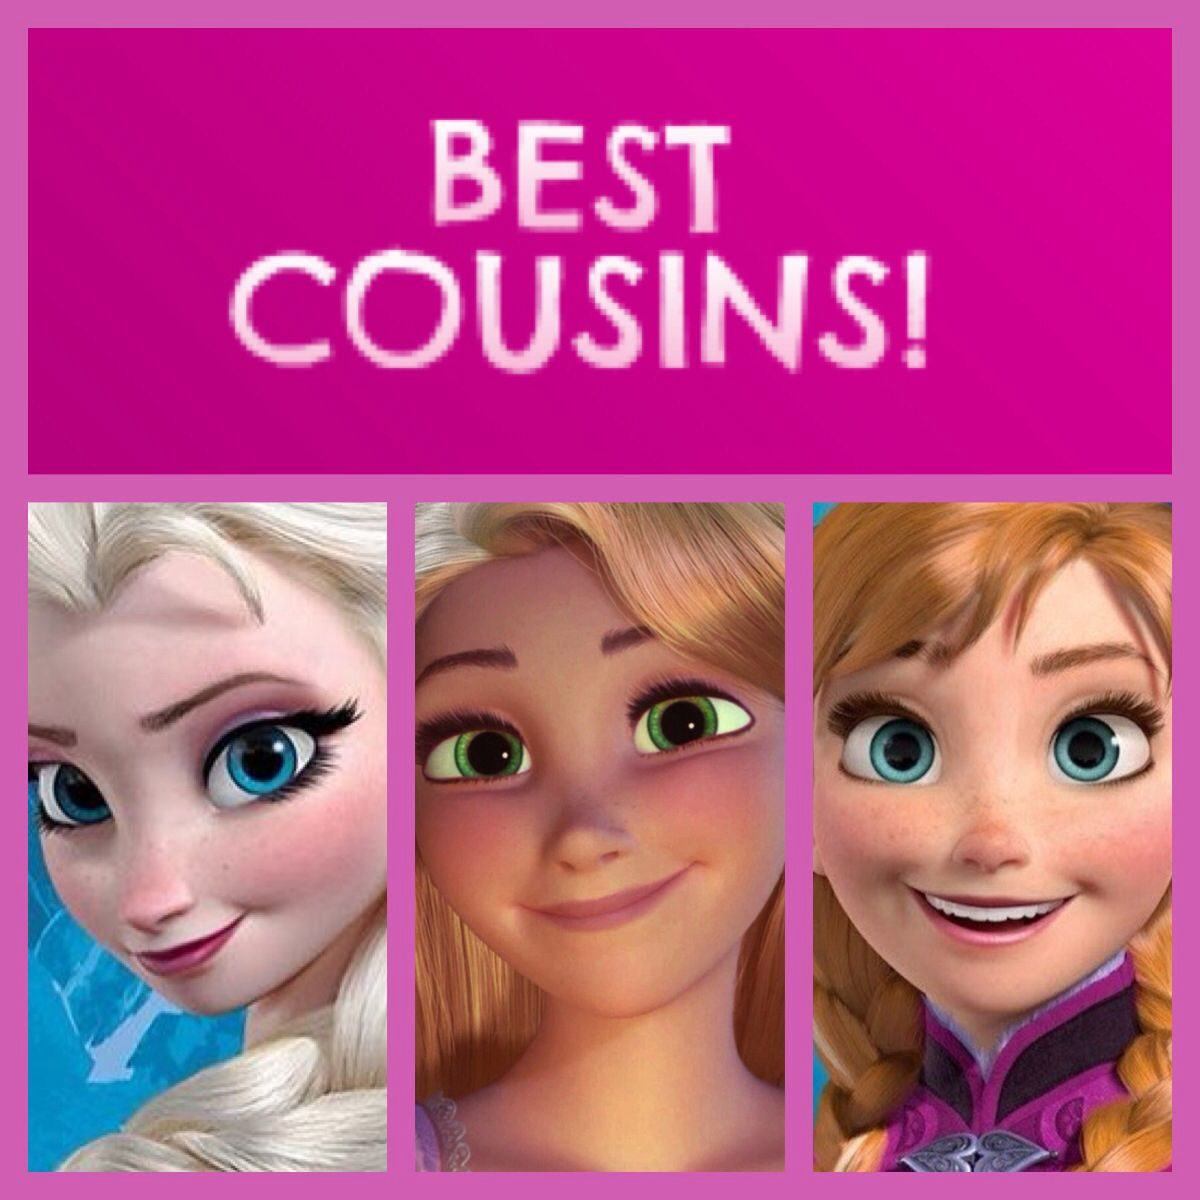 tangled frozen crossover best cousins queen elsa